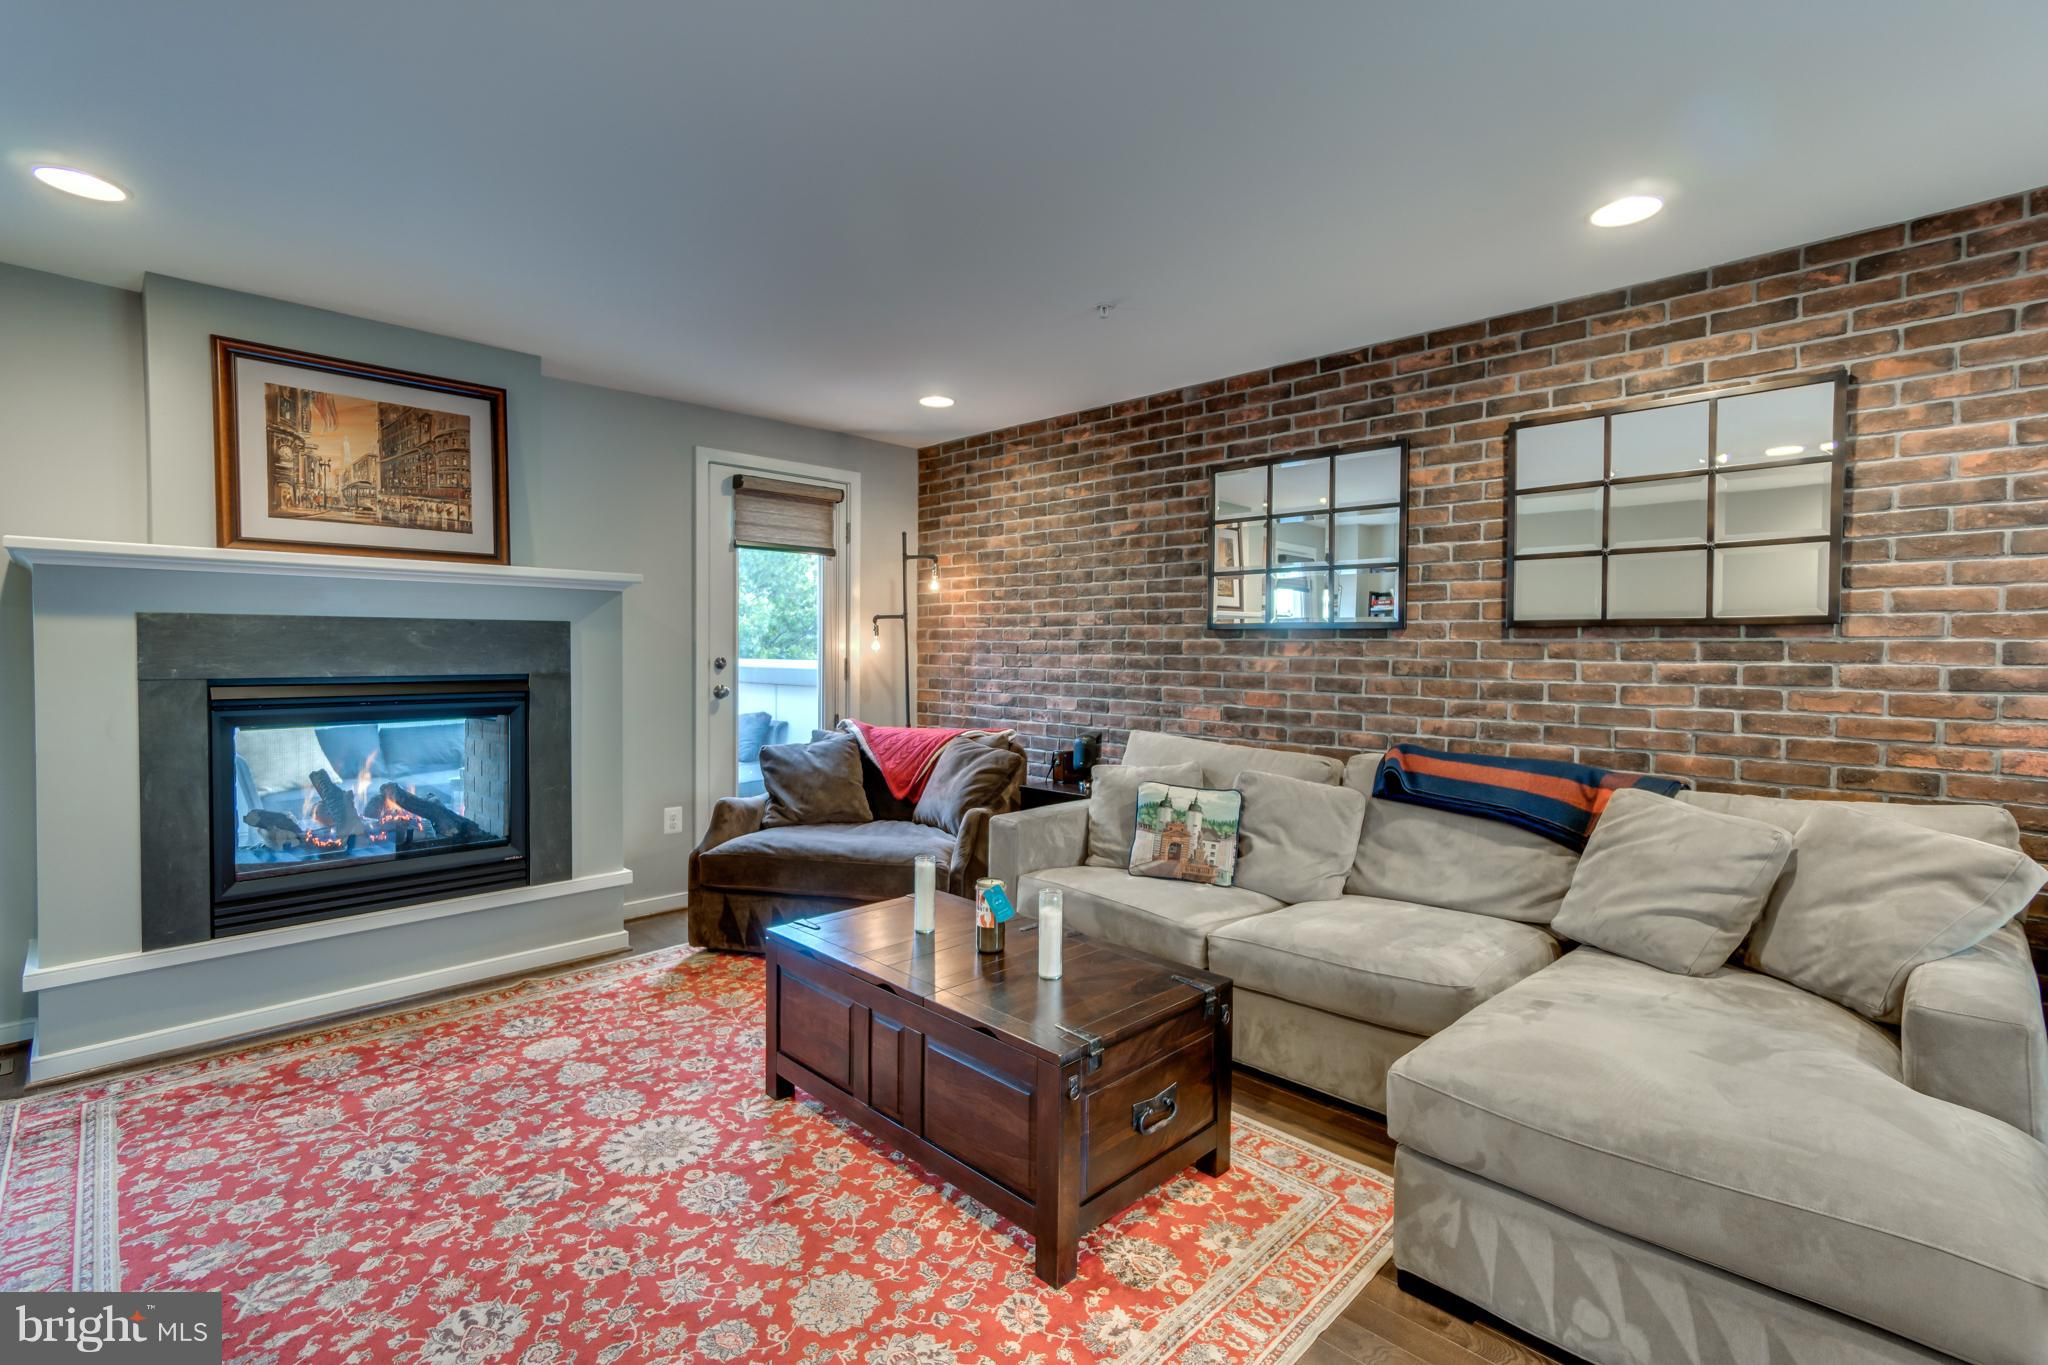 """Perfection = Quintessential Old Town Alexandria Charm with newer construction - only 4 years old!  Location that can't be beat!  Only 1/2 mile to Braddock Metro, 1 mile to National Landing, 3 miles to Amazon HQ and 4 miles to Pentagon!  Surrounded by shops, restaurants, grocery, playgrounds, dog parks, and trails - you won't even need the attached 2 car garage!  Over $120k in upgrades including: in-wall / in-ceiling speakers in 3 rooms, dark hardwoods in common areas, premium carpet in bedrooms, gourmet white kitchen with solid maple soft-close 42"""" cabinets and granite counters / spacious island,  natural gas grill on deck off kitchen that conveys,  luxury marble master shower with dual shower heads and body jets, custom ELFA closet organizers,  dual-zone smart home HVAC systems (ecobee), plantation shutters and blinds on all windows & patio doors, bedroom-level full size HE laundry,  en-suite full bathrooms for both 3rd level bedrooms,  Kohler faucets,  Benjamin Moore paint palette & crown molding throughout,  Smart Lighting - vacation mode & exterior auto-on at dusk.  Entertain in style:  warehouse vibe loft with exposed brick wall and indoor / outdoor natural gas fireplace that passes through to your rooftop deck with views of National Harbor, Old Town and even the Washington Monument!  Need an extra bedroom?  No problem!  Add 1 wall in the loft to create a 4th bedroom with en-suite full bathroom.Ground level office/bedroom."""